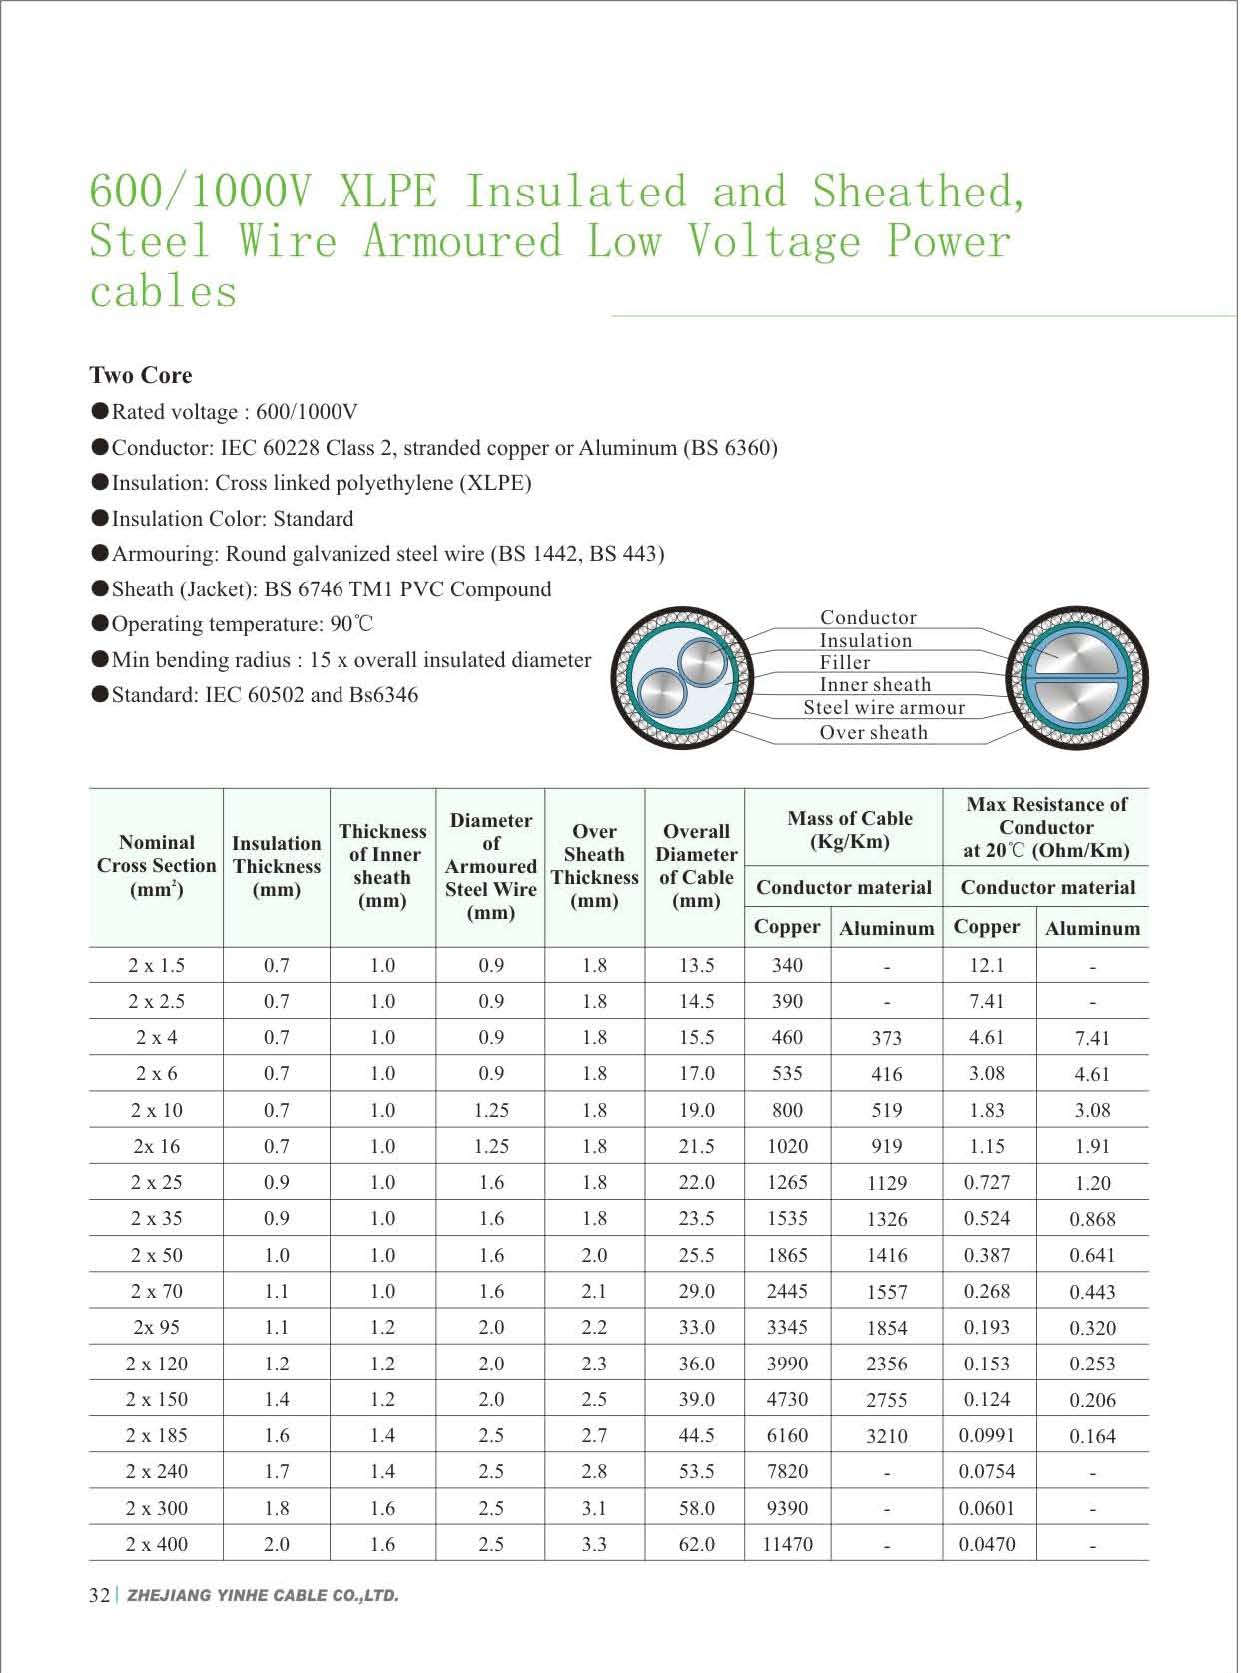 600 1000v xlpe insulated and pvc sheathed steel wire armoured low voltage power cables download pdf